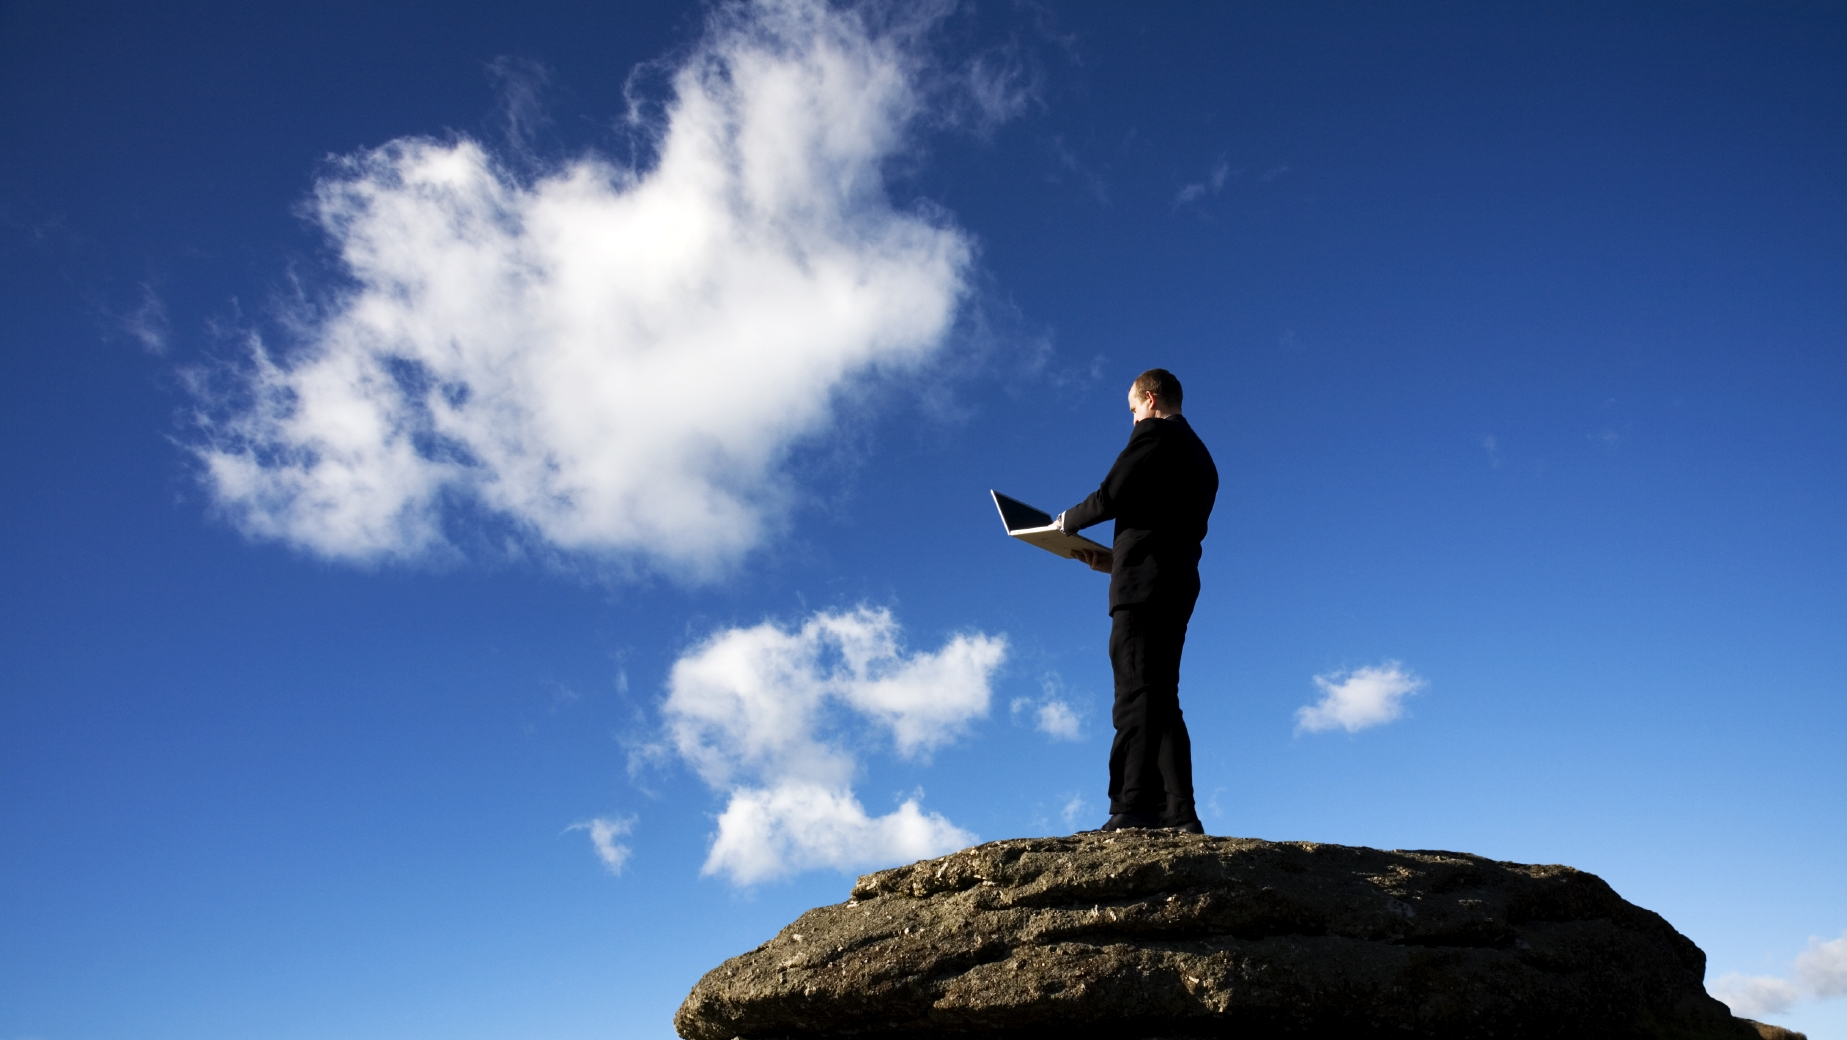 Is cloud computing the future? This guy seems to think so ... photo by CC user George Thomas on Flickr